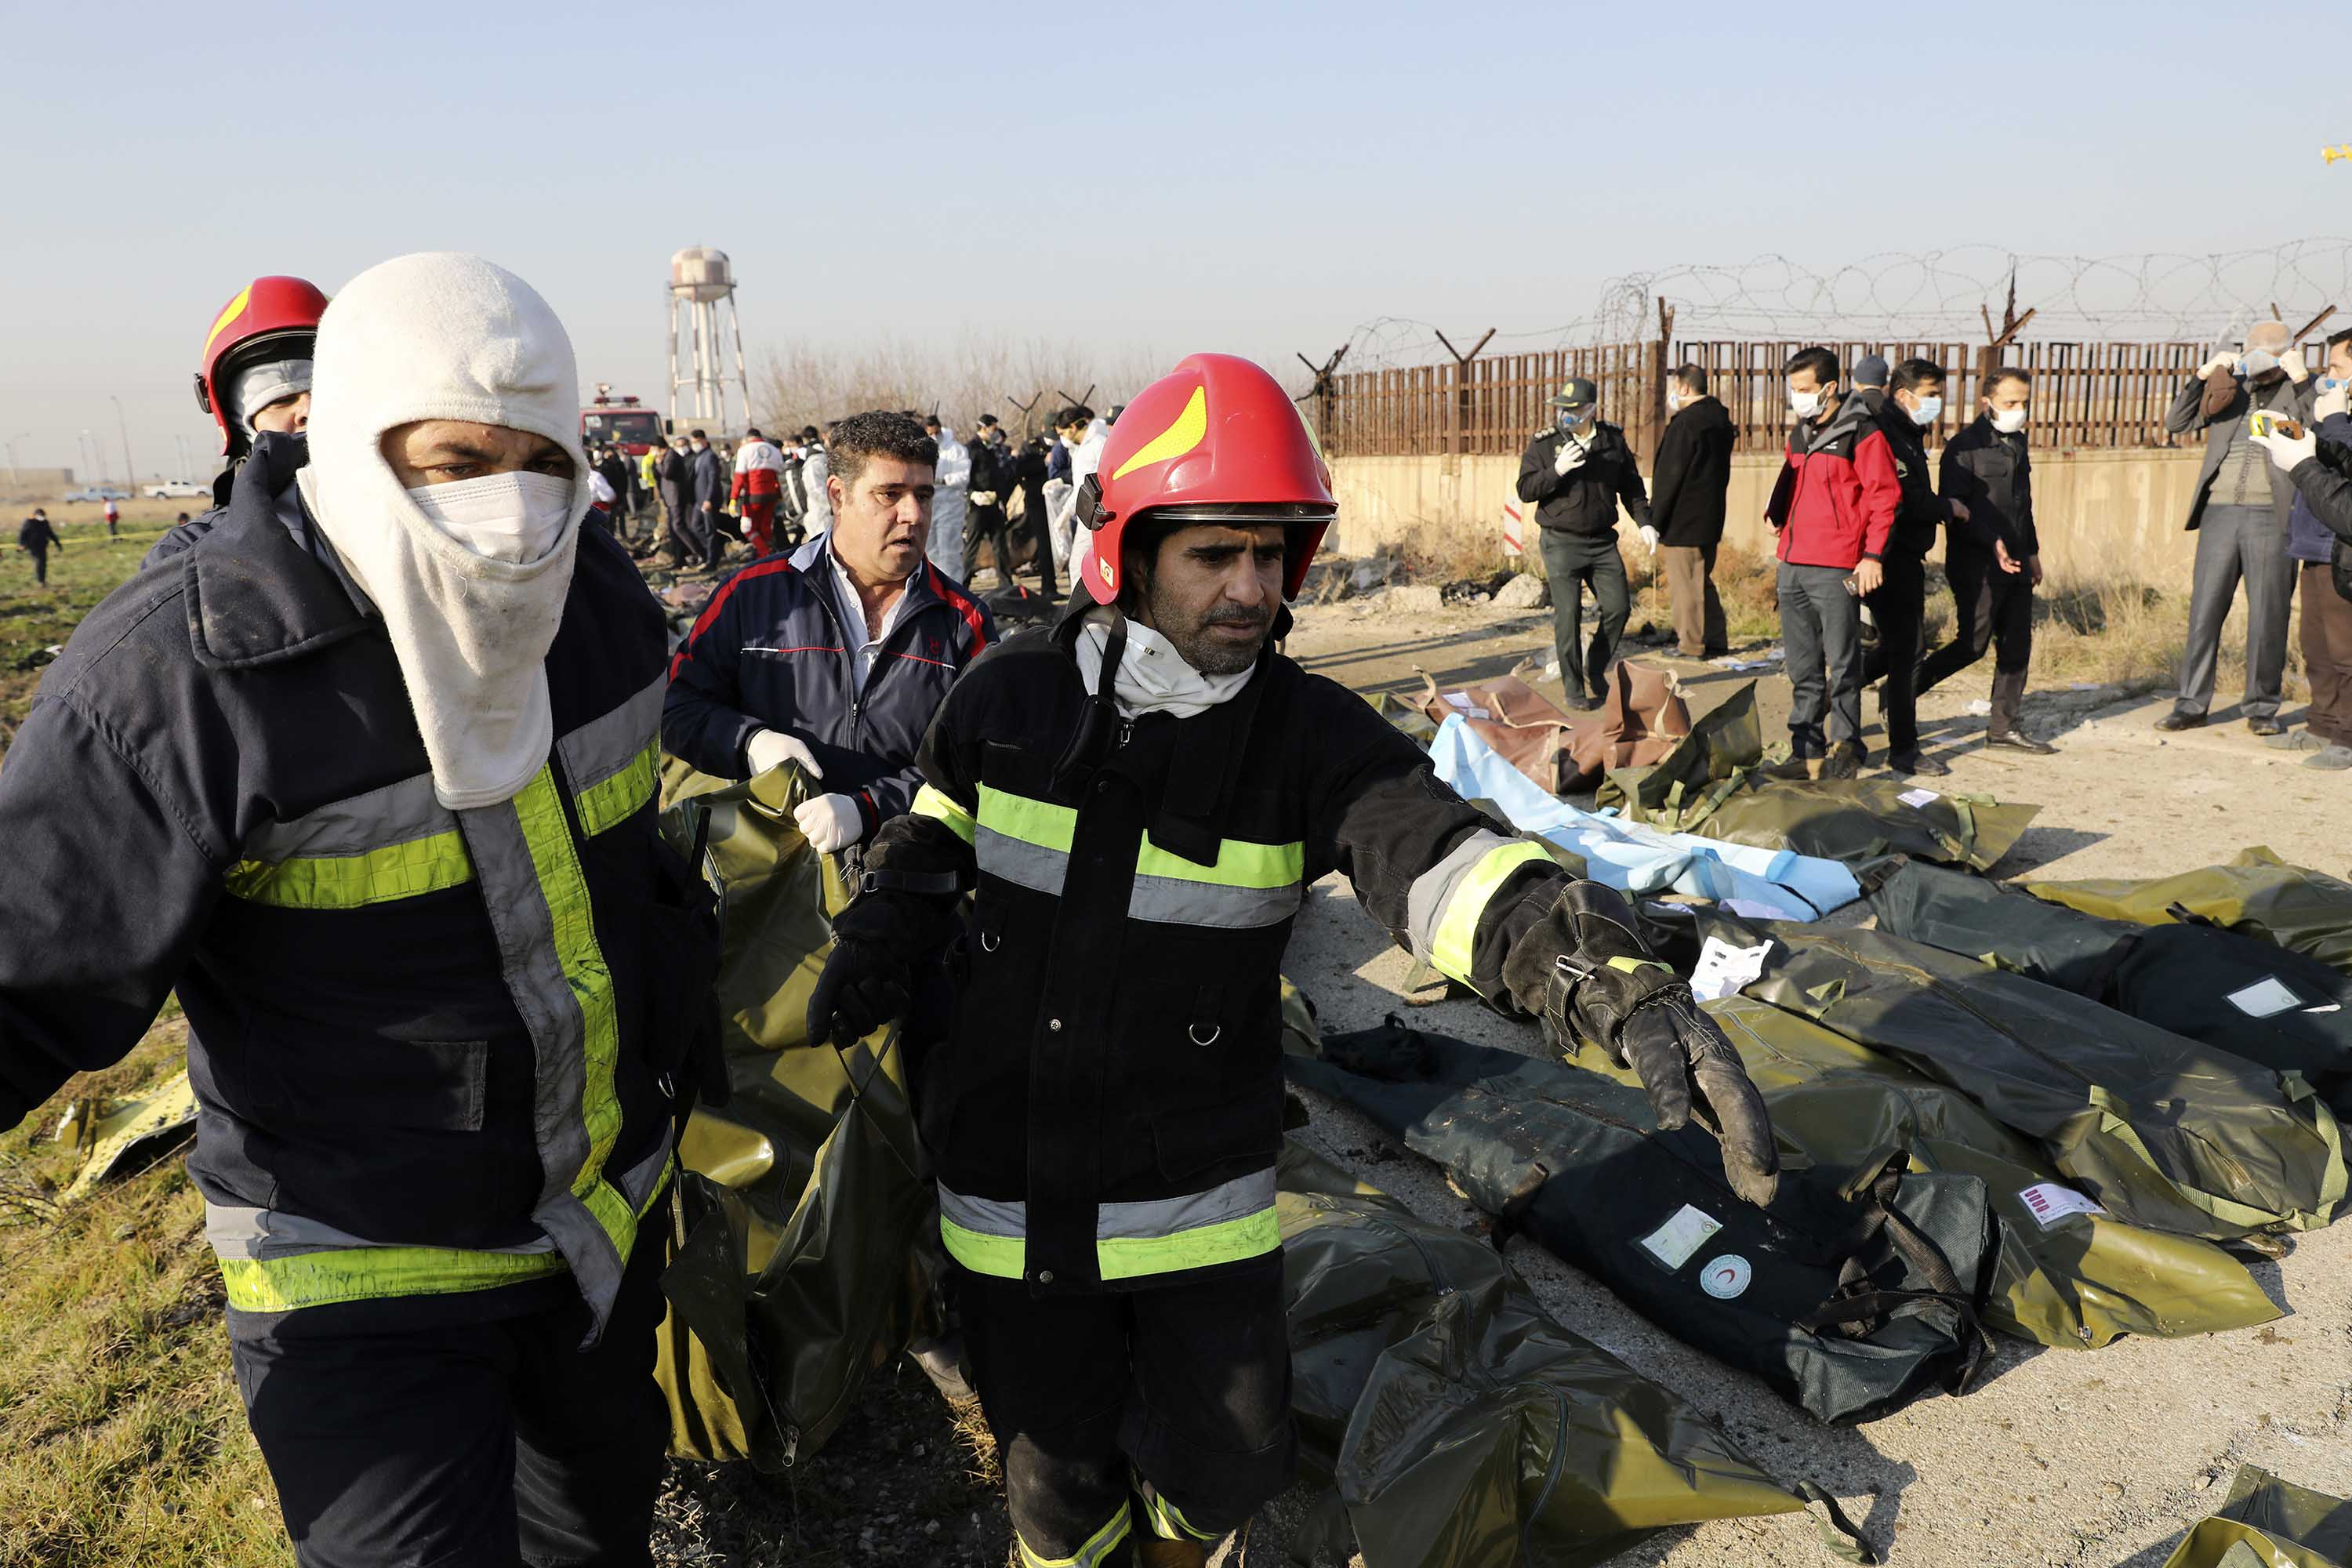 Rescue workers carry victims' remains at the crash site.